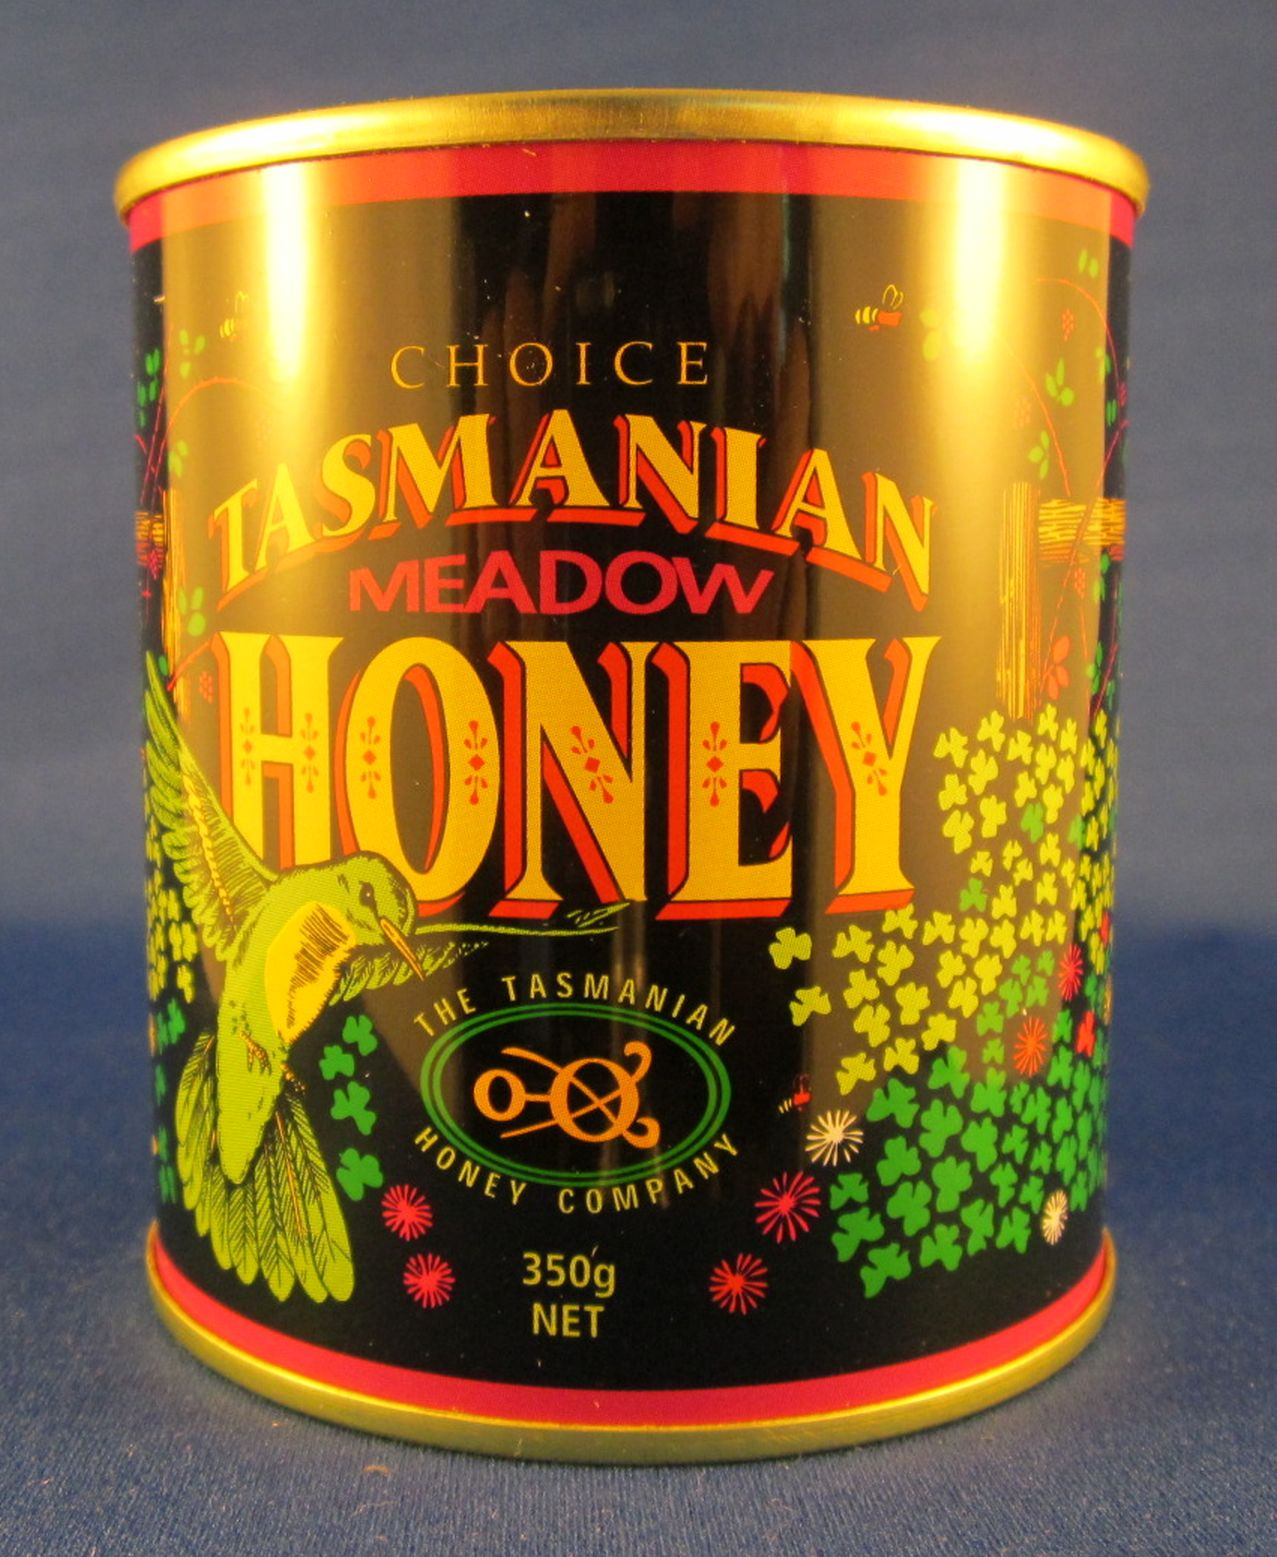 Tasmanian Meadow honey 350gms